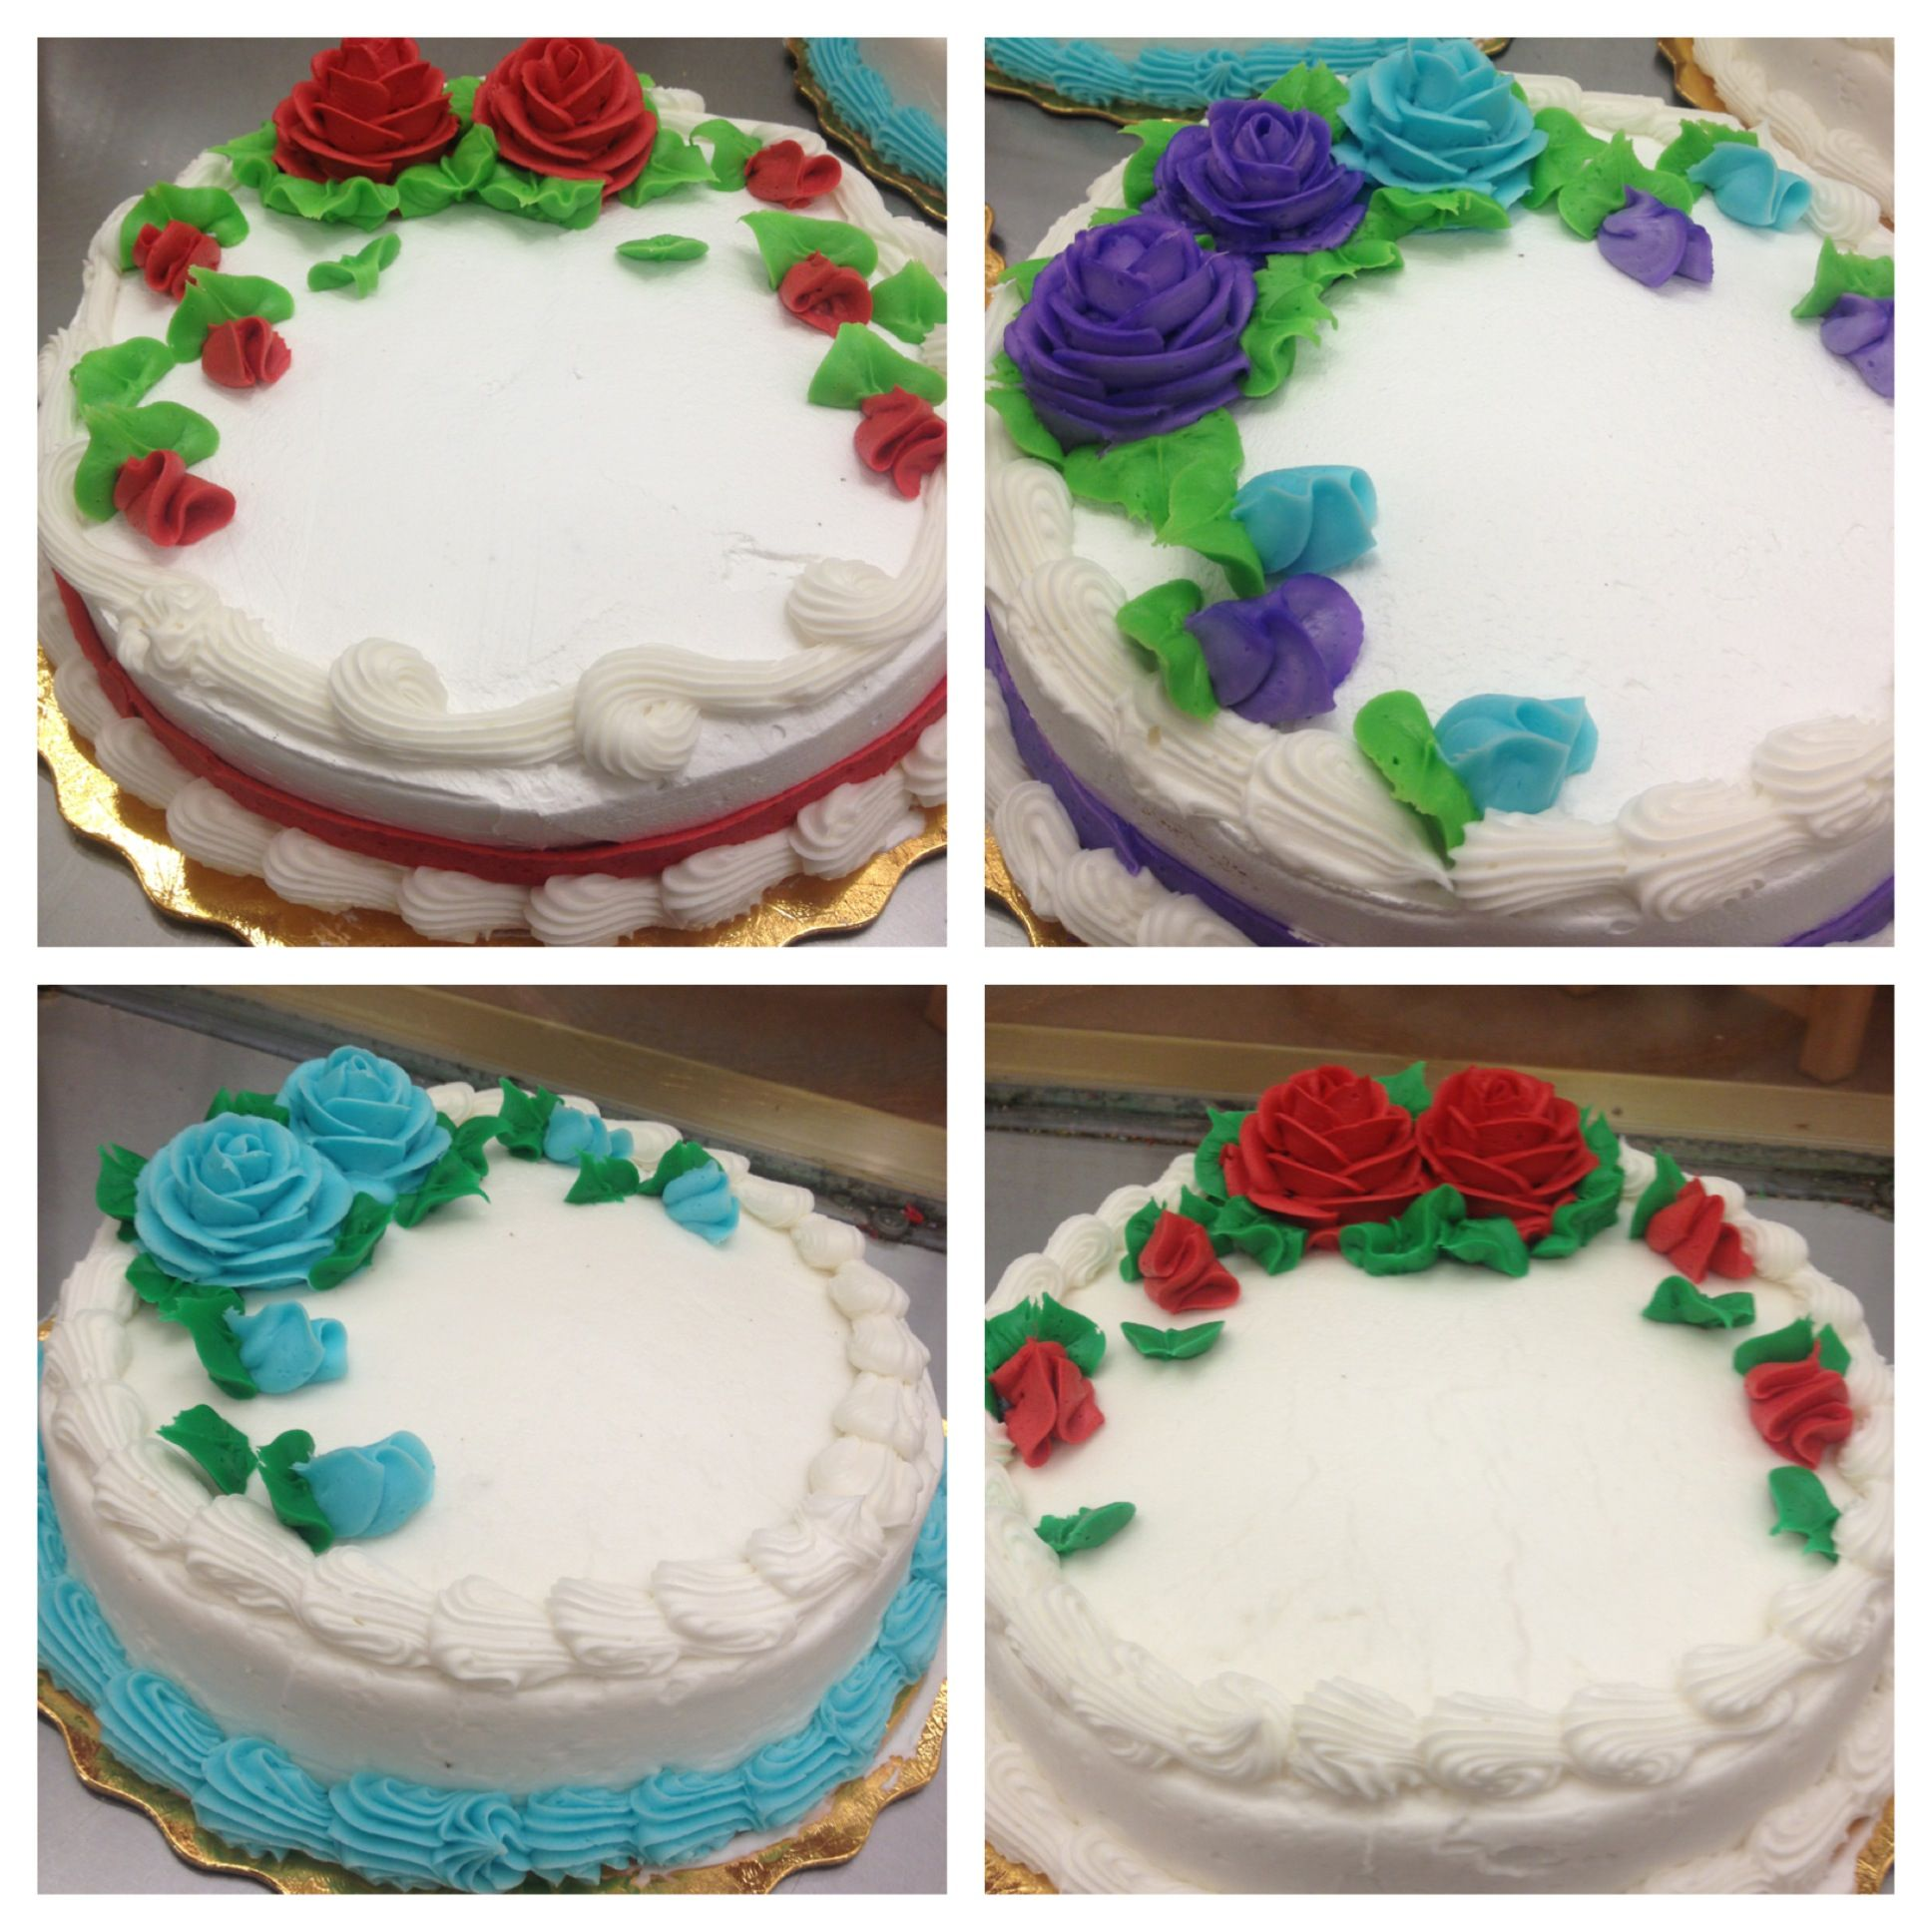 Single Layer Cakes With Roses With Images Single Layer Cakes